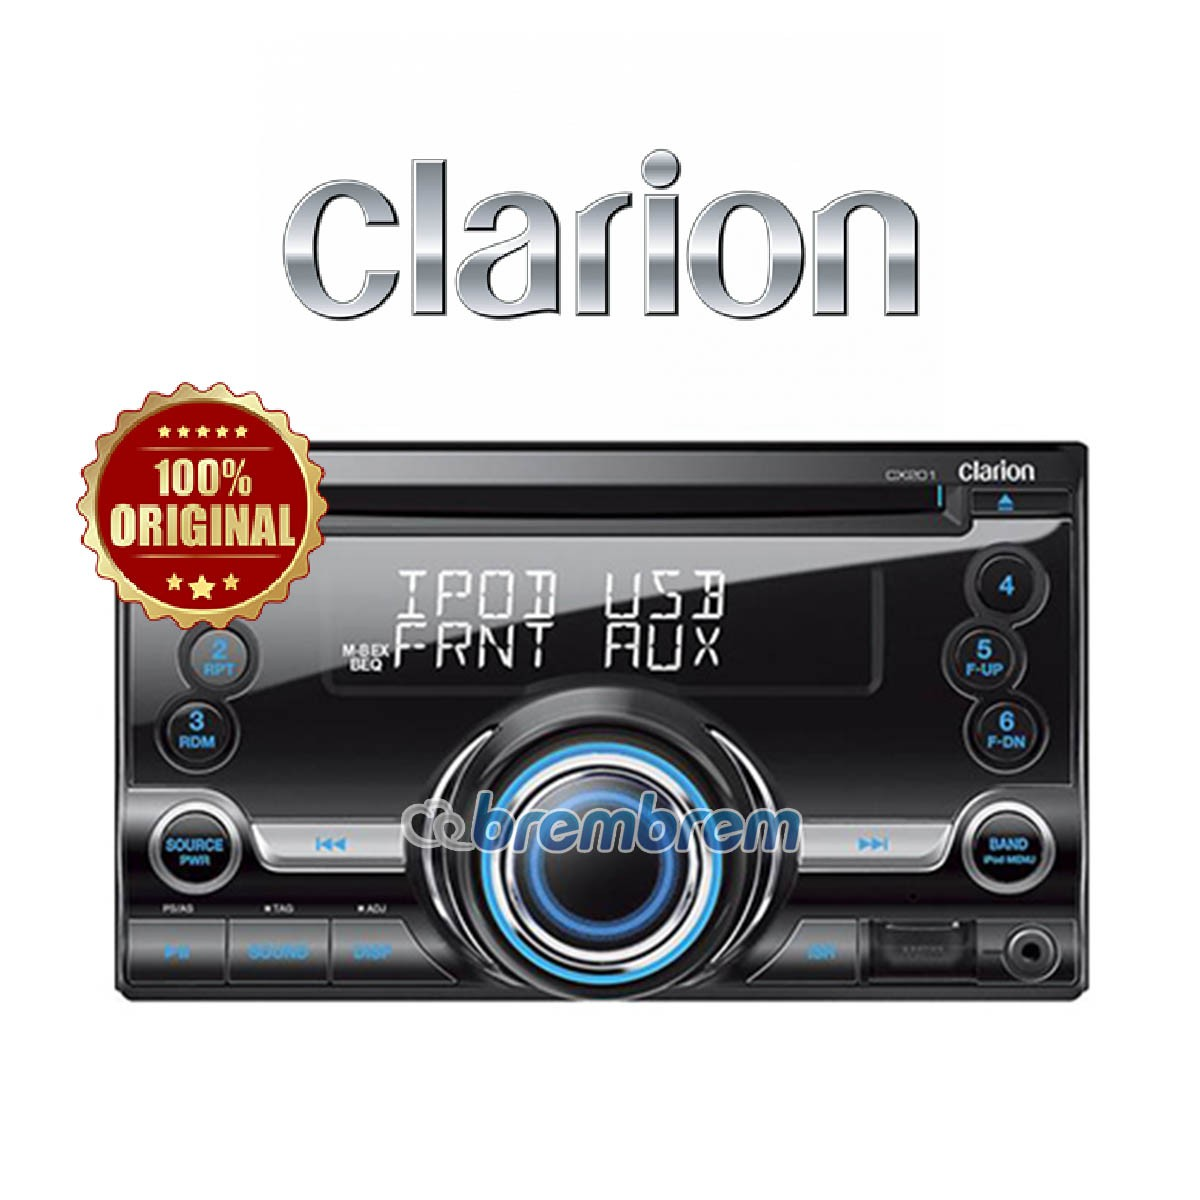 CLARION CX 201 A - HEADUNIT DOUBLE DIN